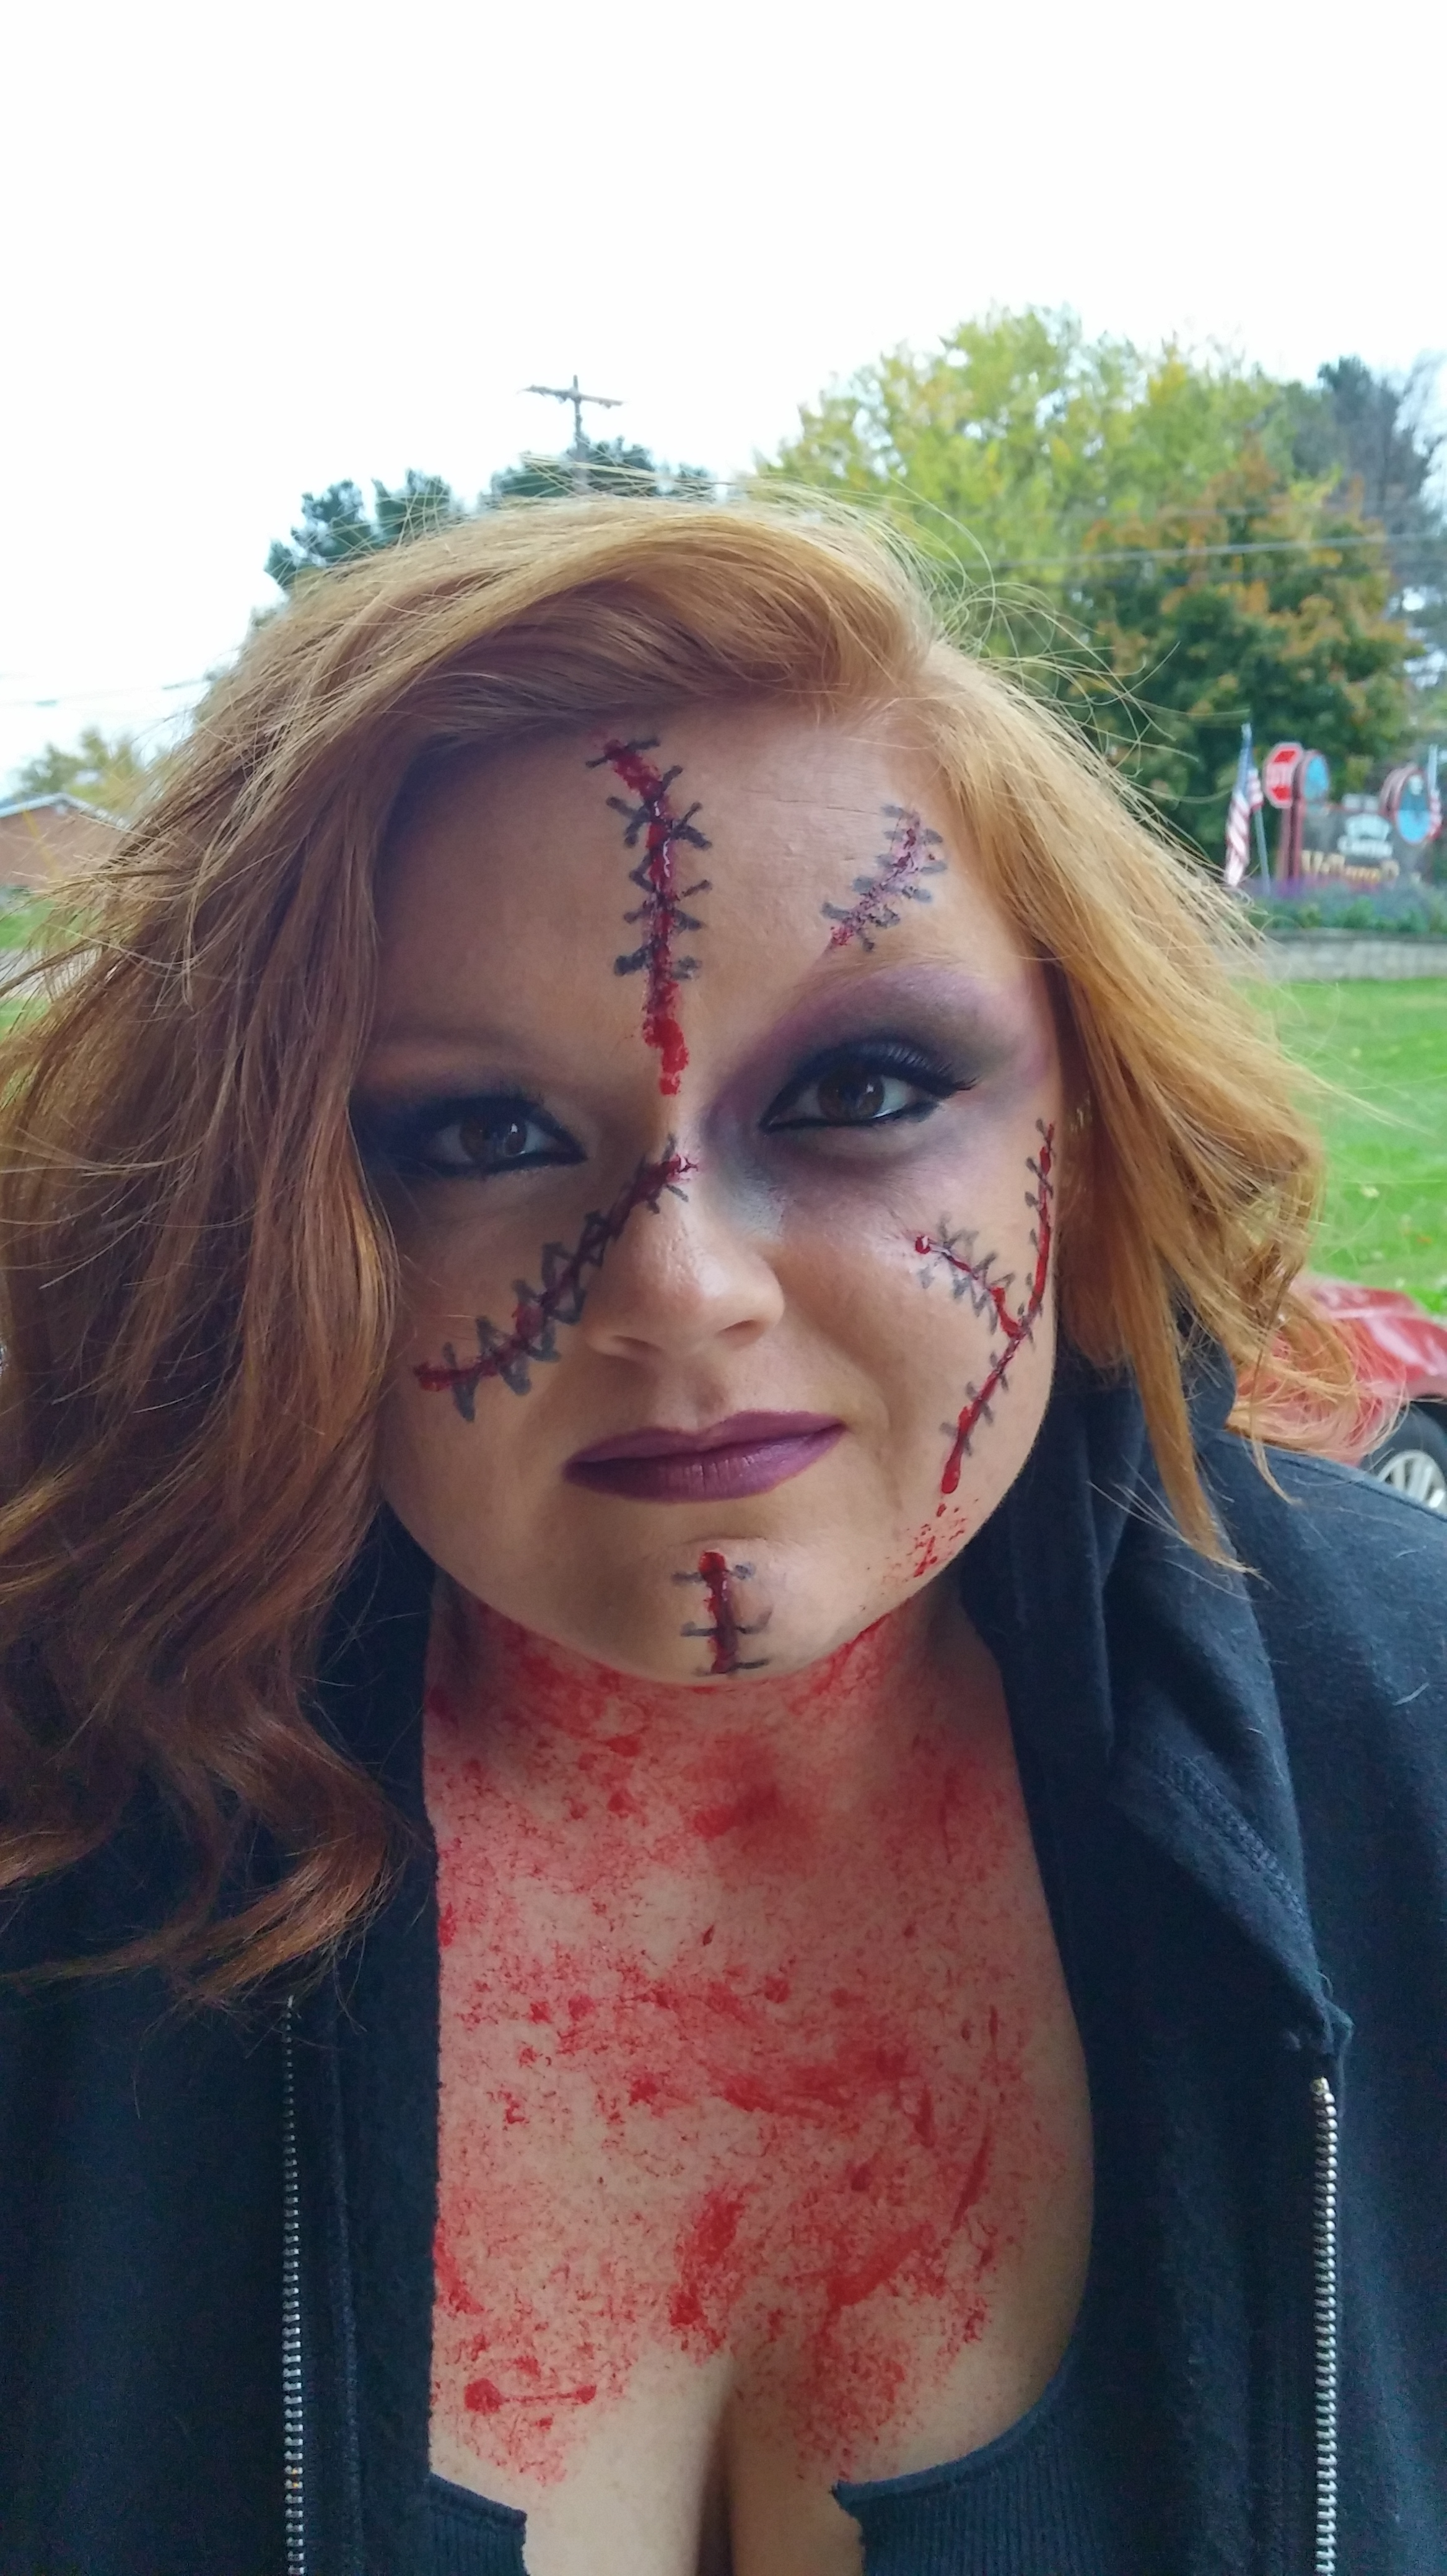 Halloween Makeup Store 1halloween zombie scars tattoos fake scab blood special fx costume makeup new flying store Halloween 5 Halloween 7